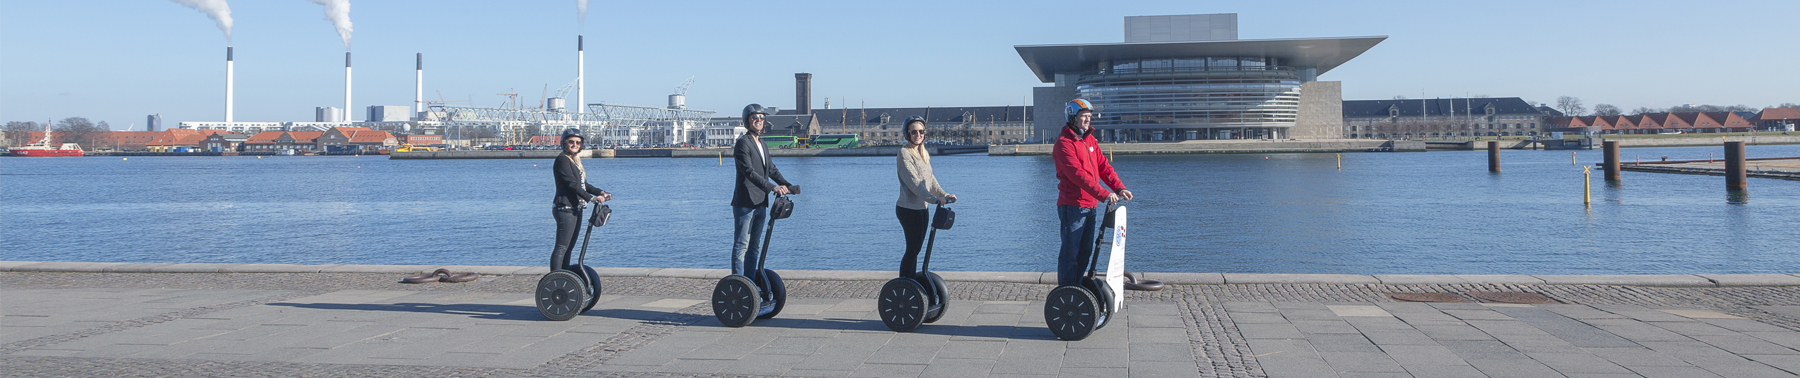 Segway Sightseeing Tours At Waterfront